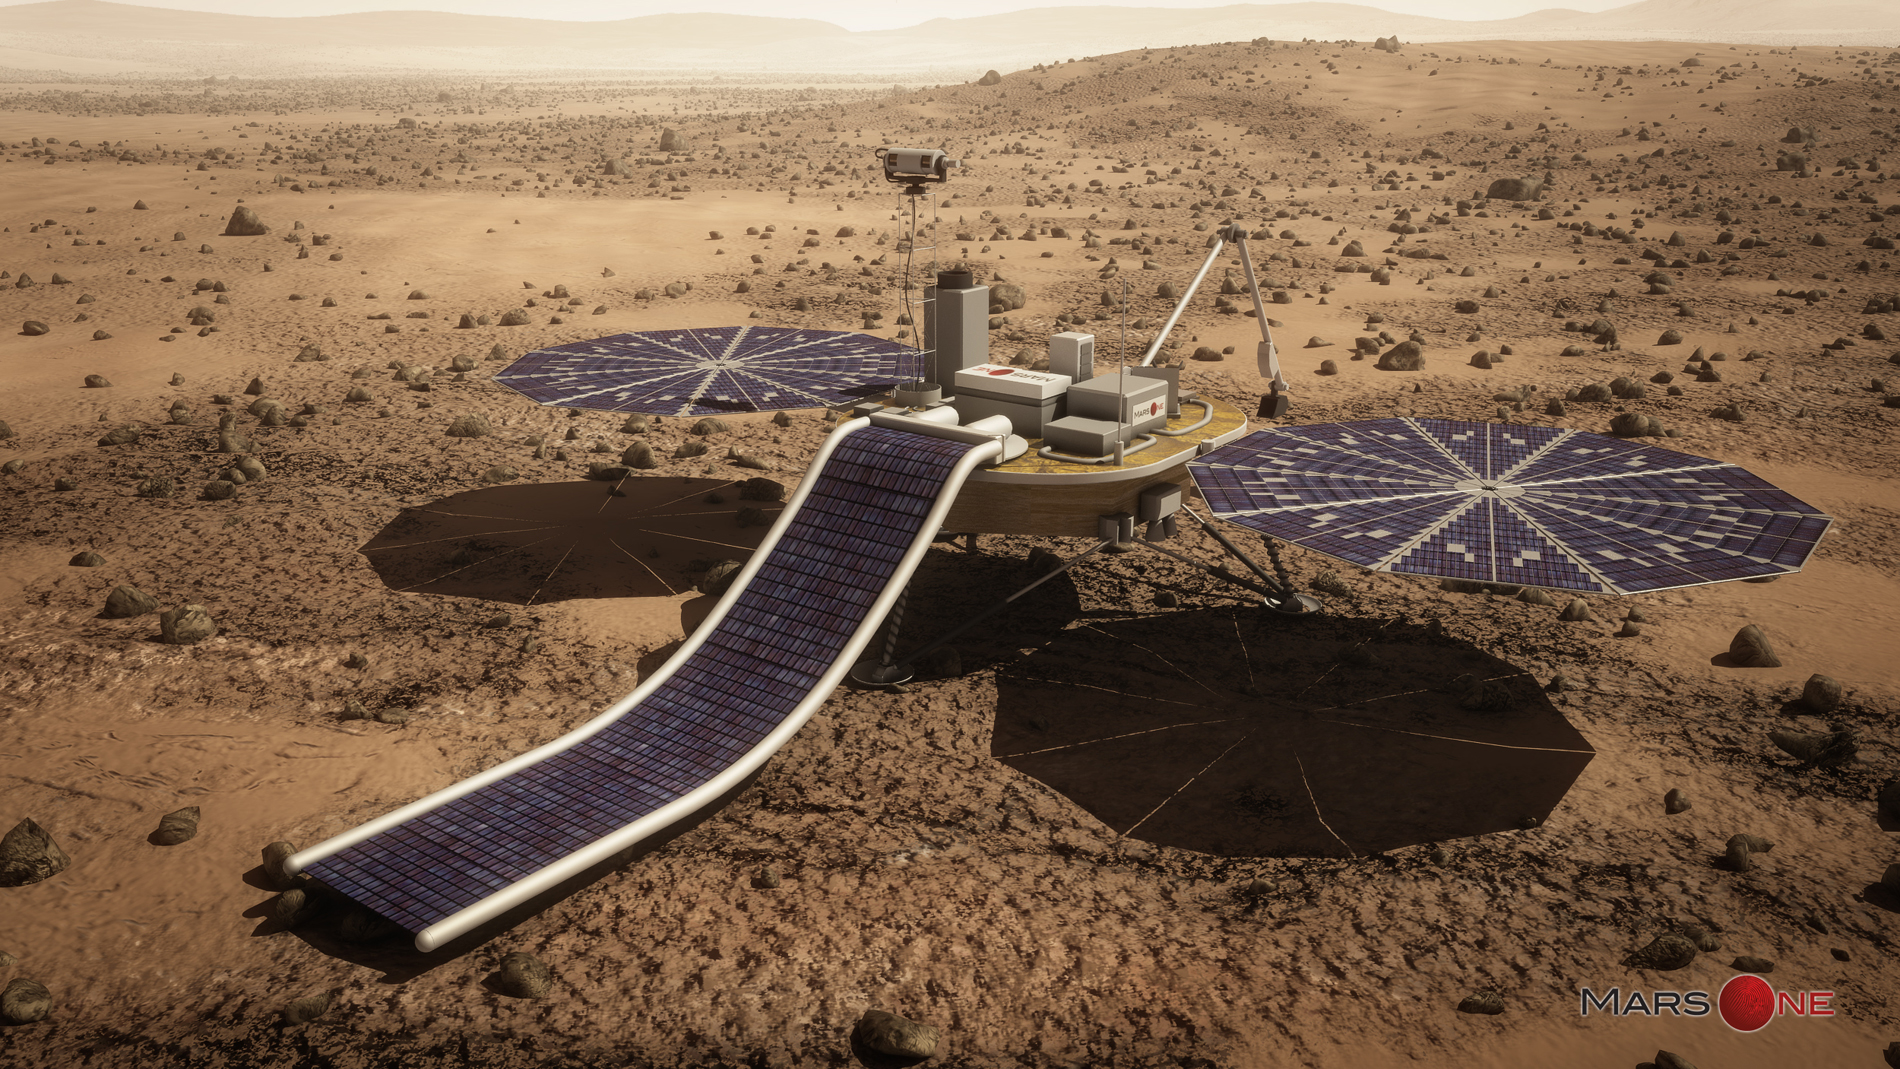 Live from Mars: Private Red Planet Mission to Beam Video to Earth in 2018